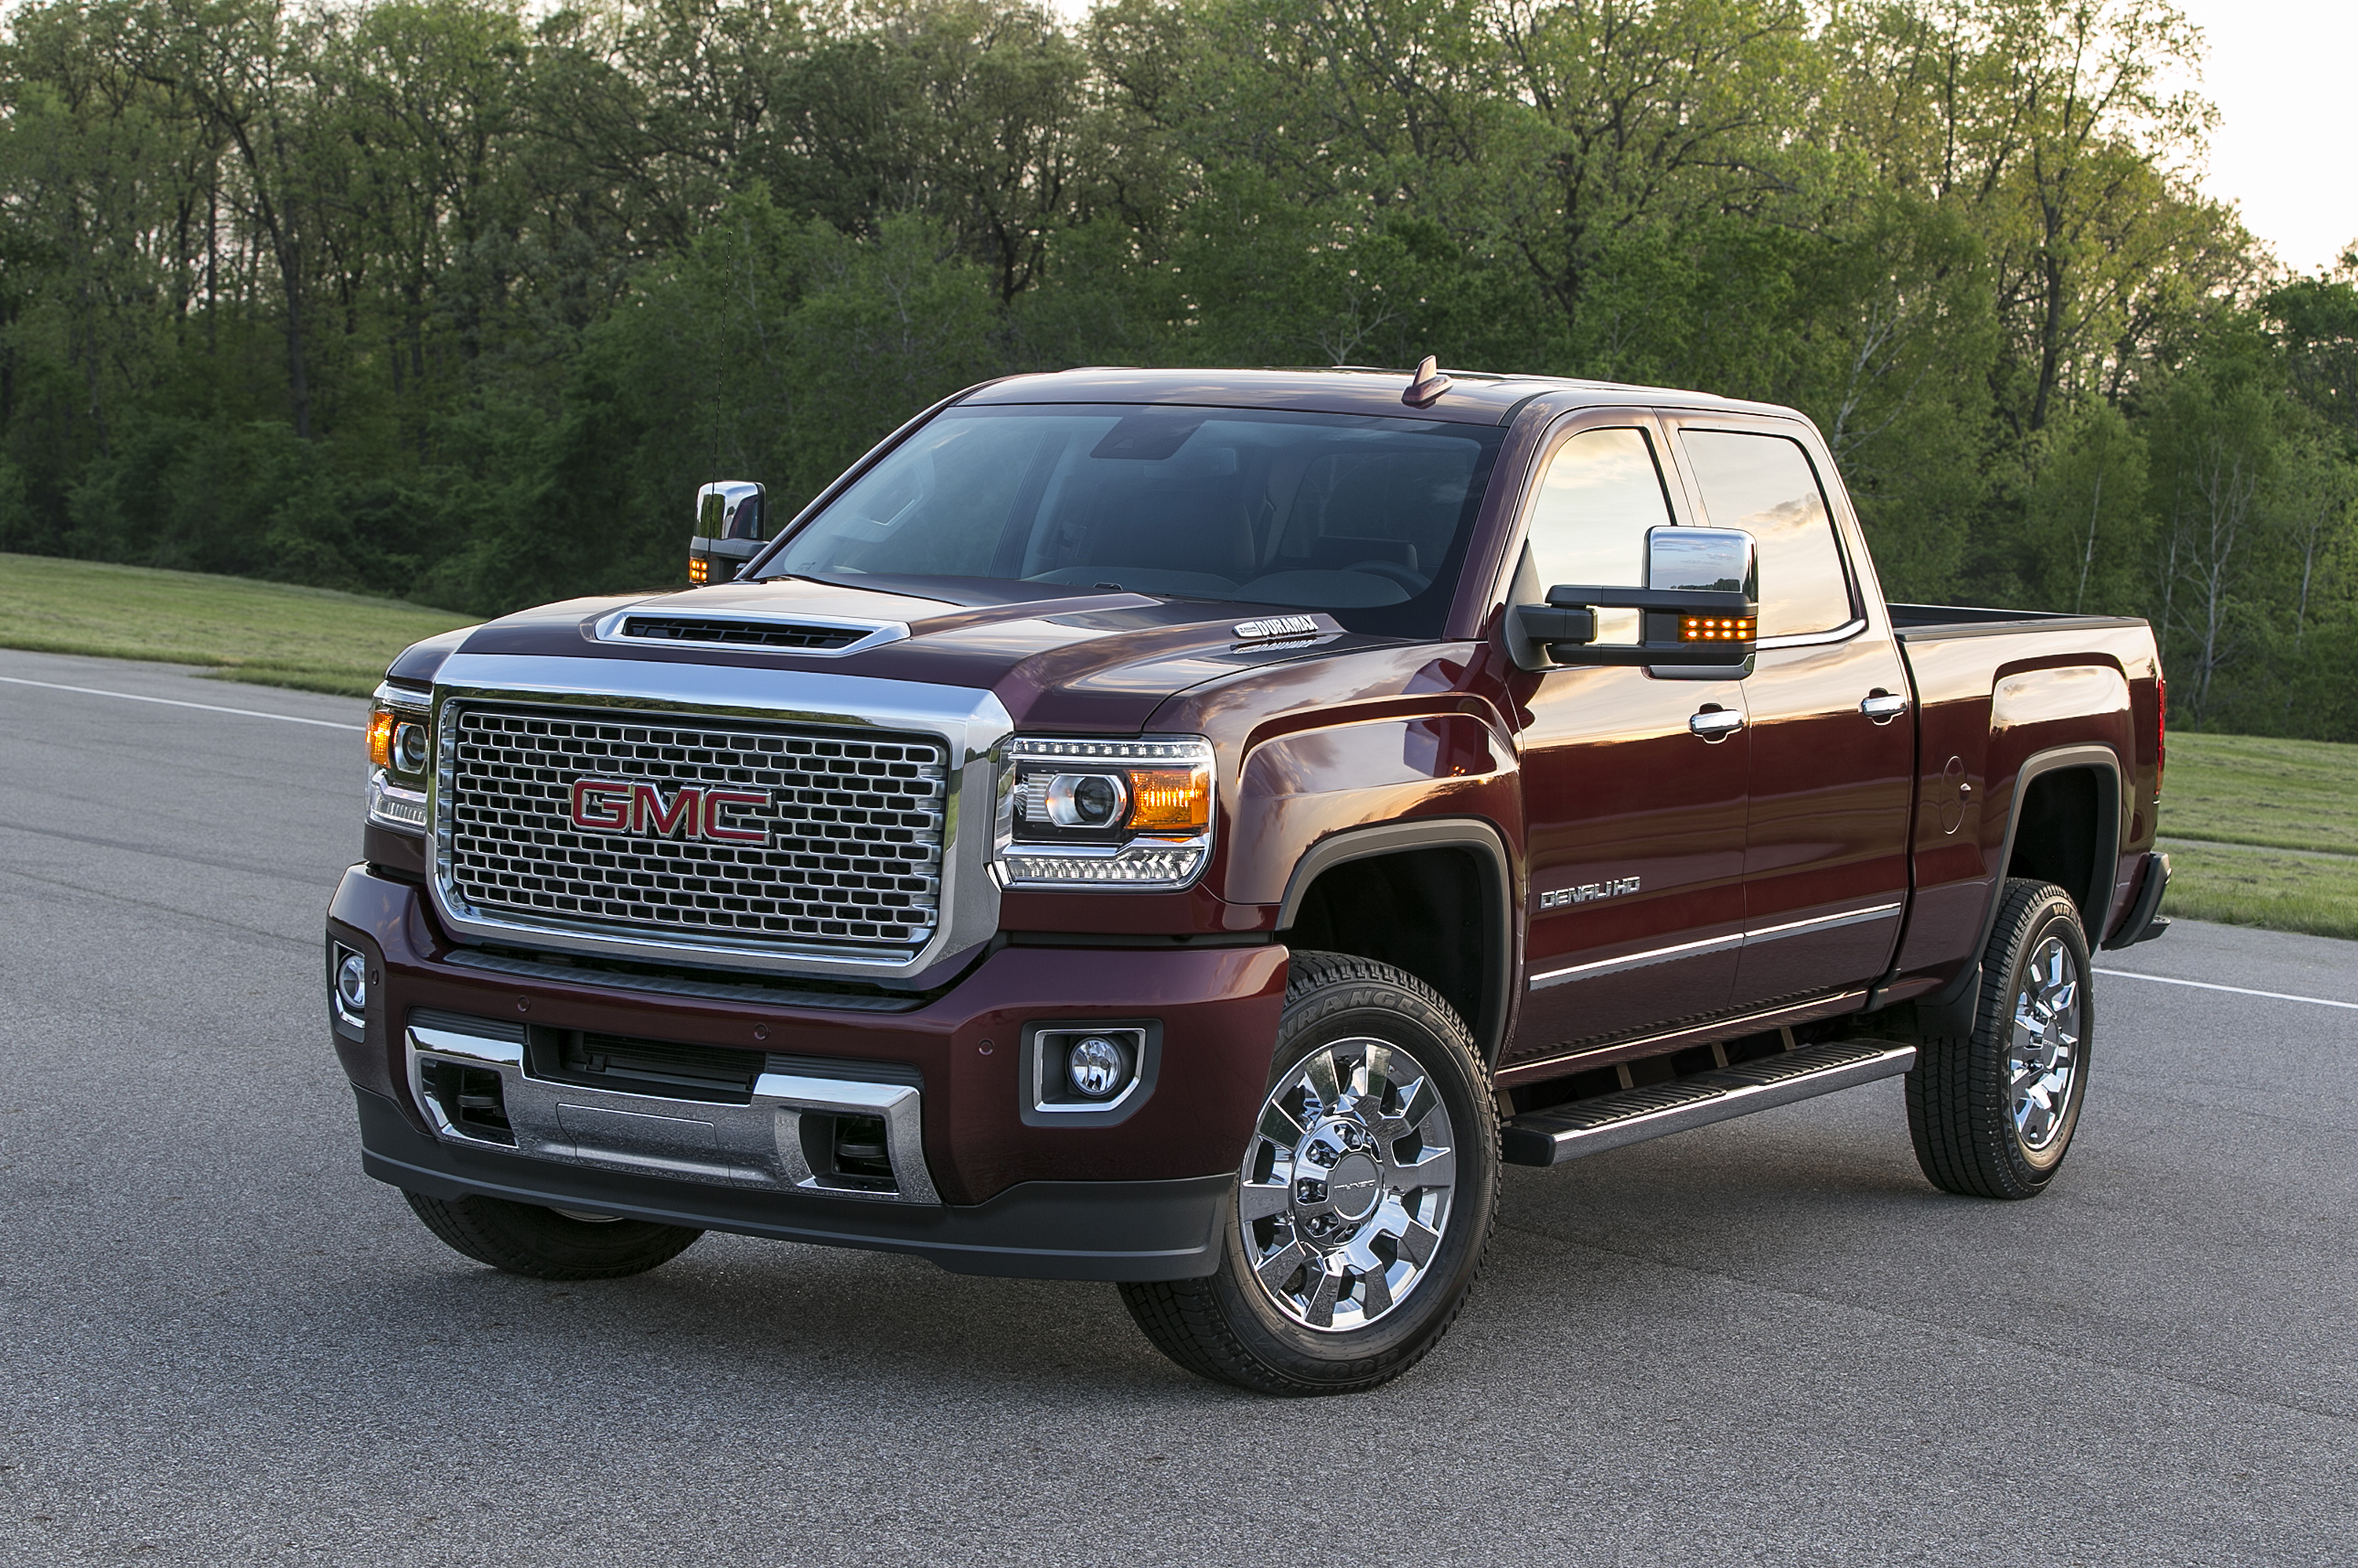 2017 Gmc Sierra Denali 2500hd Bold Hood Design Hints At What Lies All Terrain Beneath